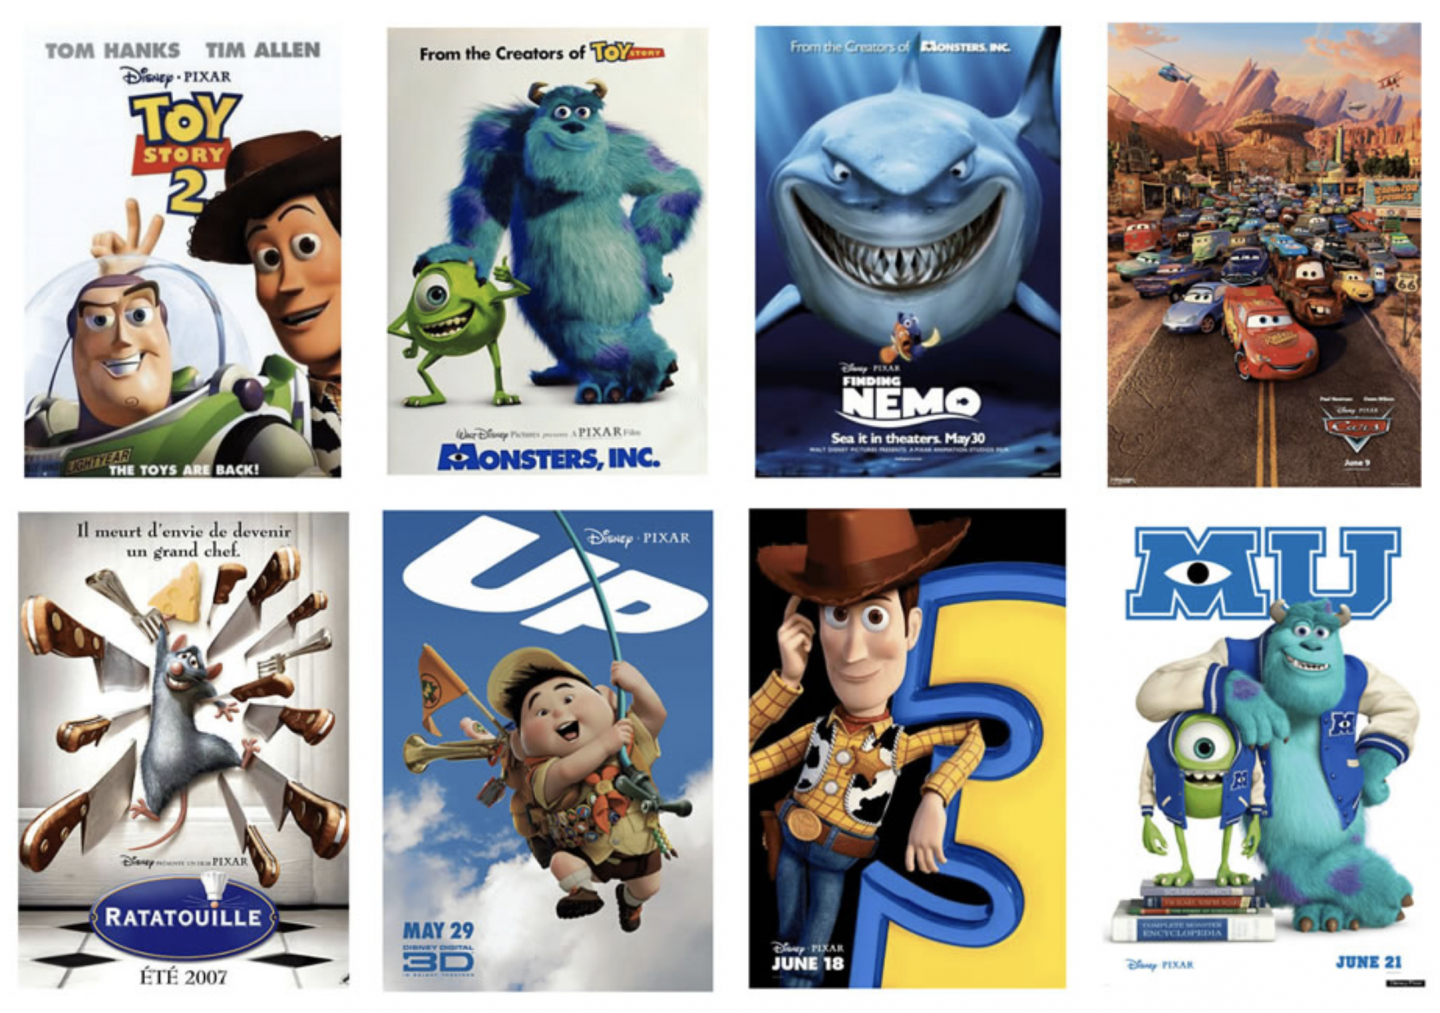 An image compilation of film posters for some of disney pixar's most famous movies.